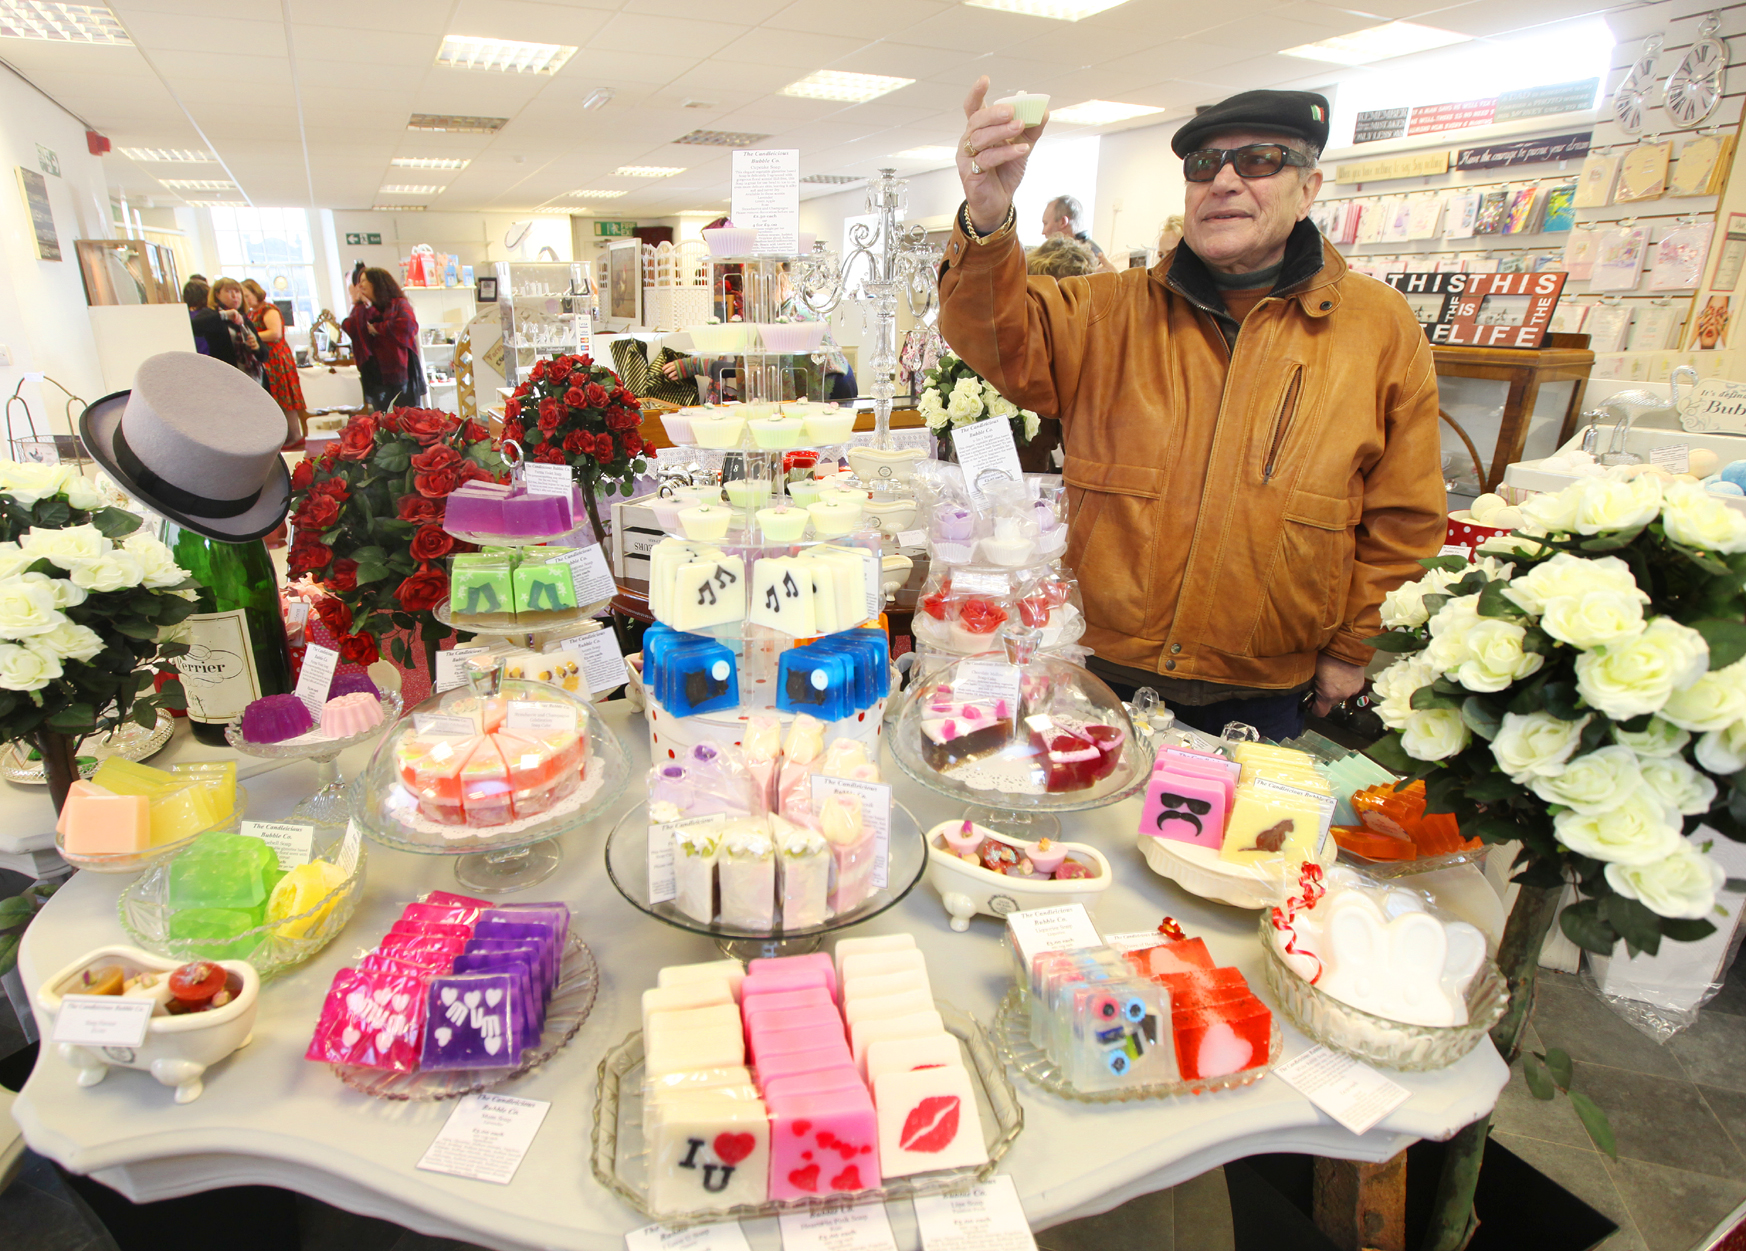 A customer browses the array of goods on offer at the Old Fire Station in Skipton